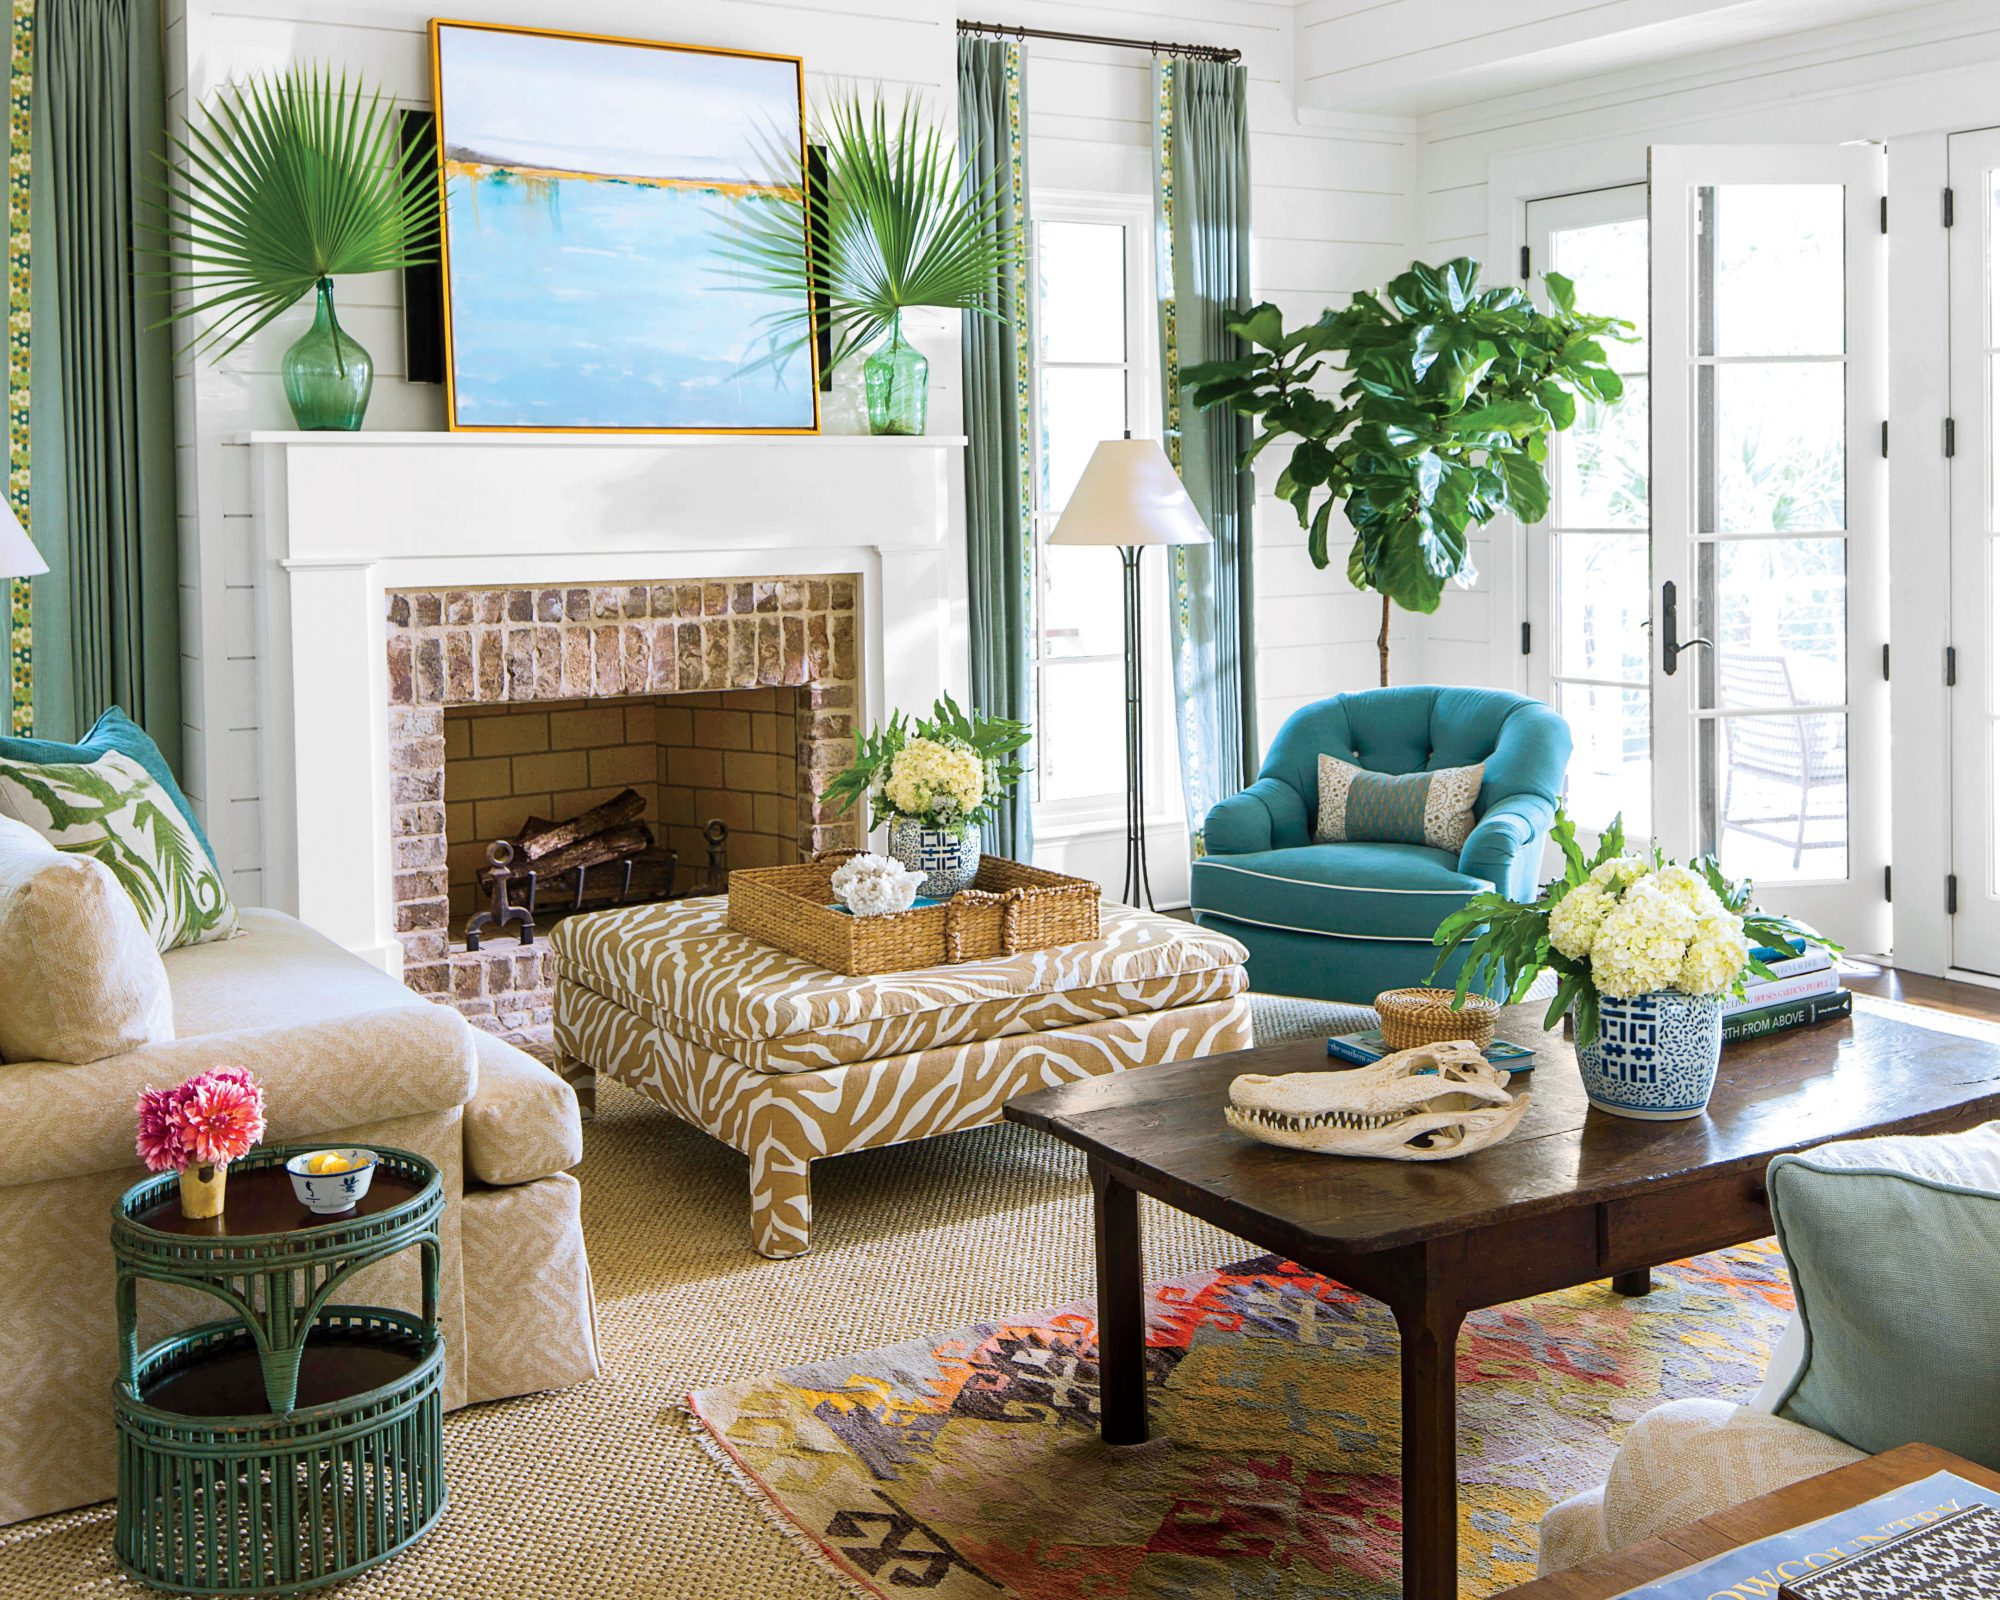 Living Room Decorating Ideas Without Sofa 106 living room decorating ideas - southern living